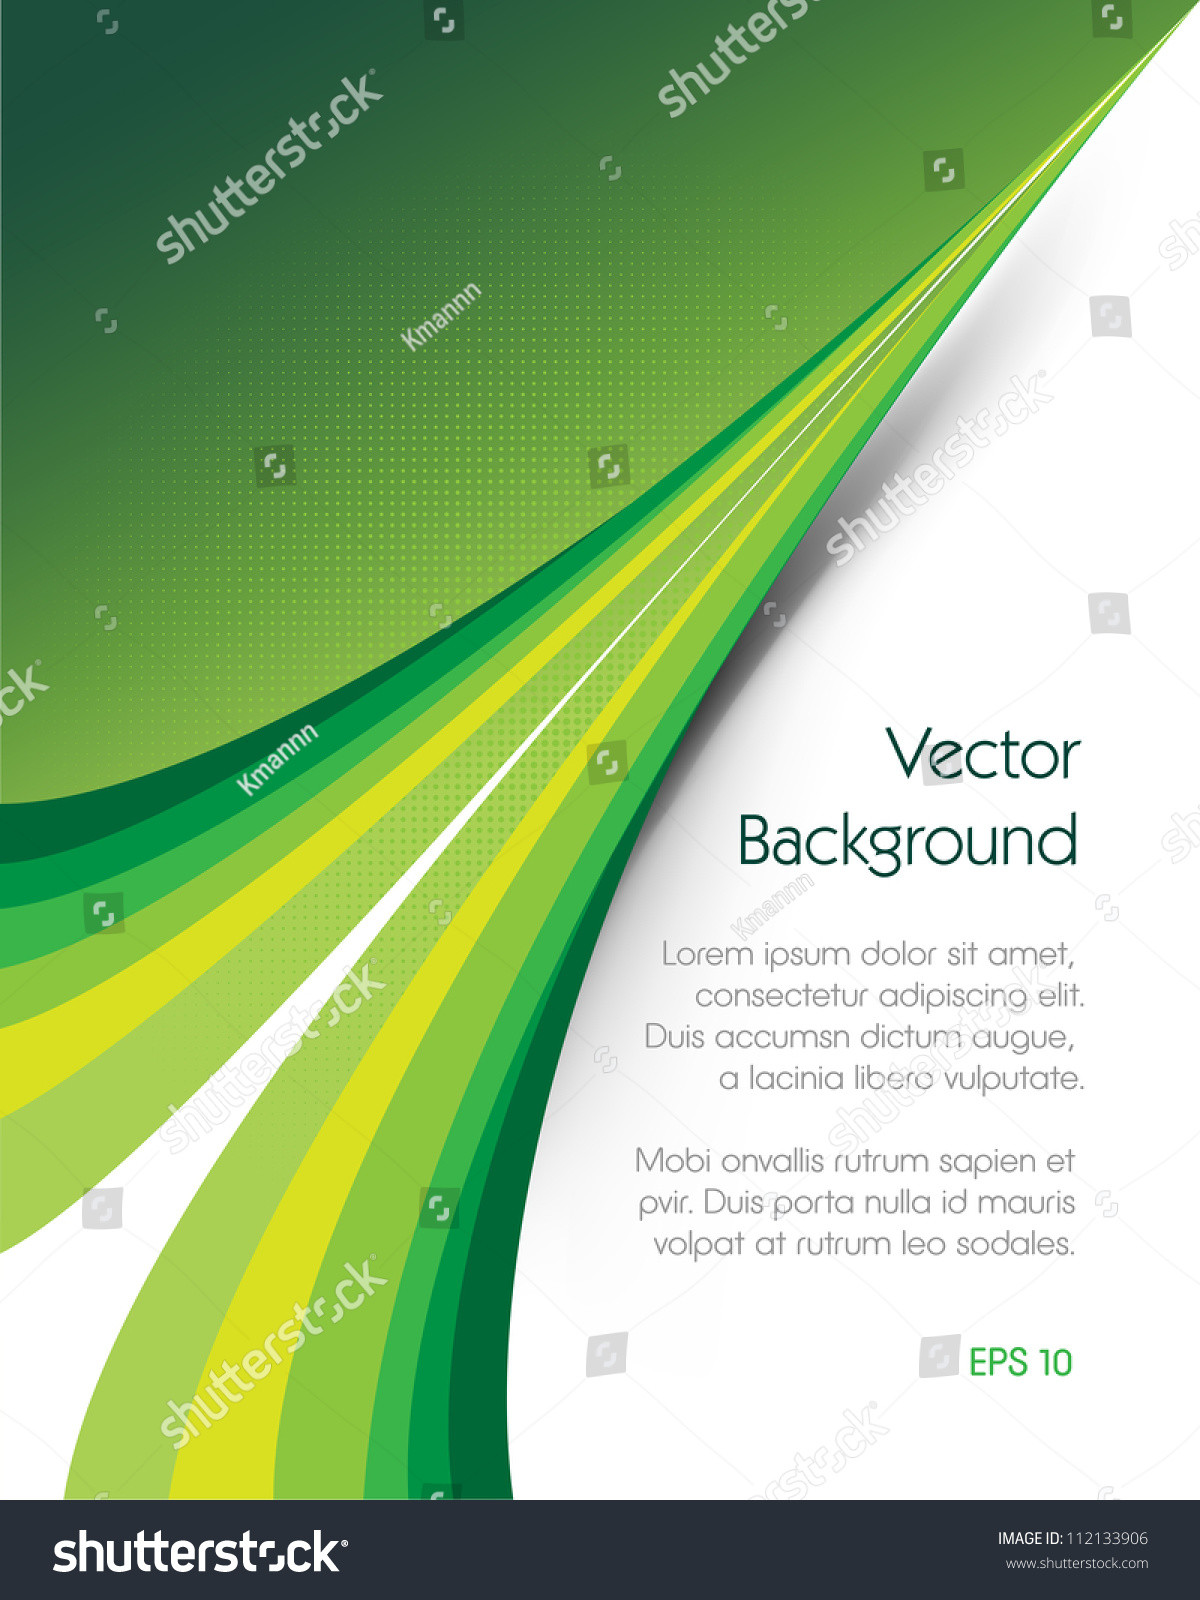 Green Brochure Vector Background This Image Will Download